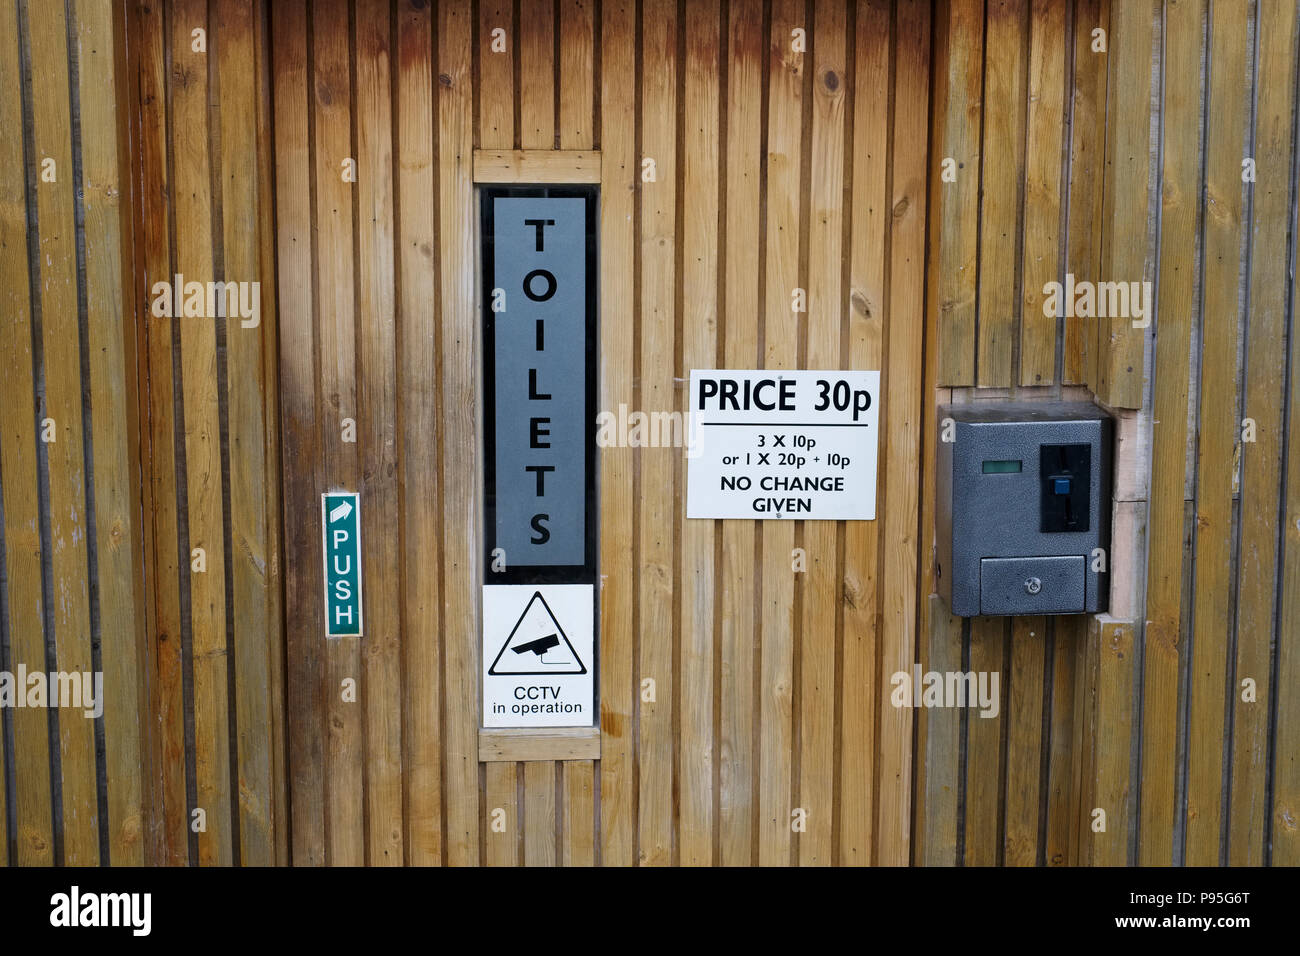 Public toilet WC coin operated pay to use in outdoor park - Stock Image